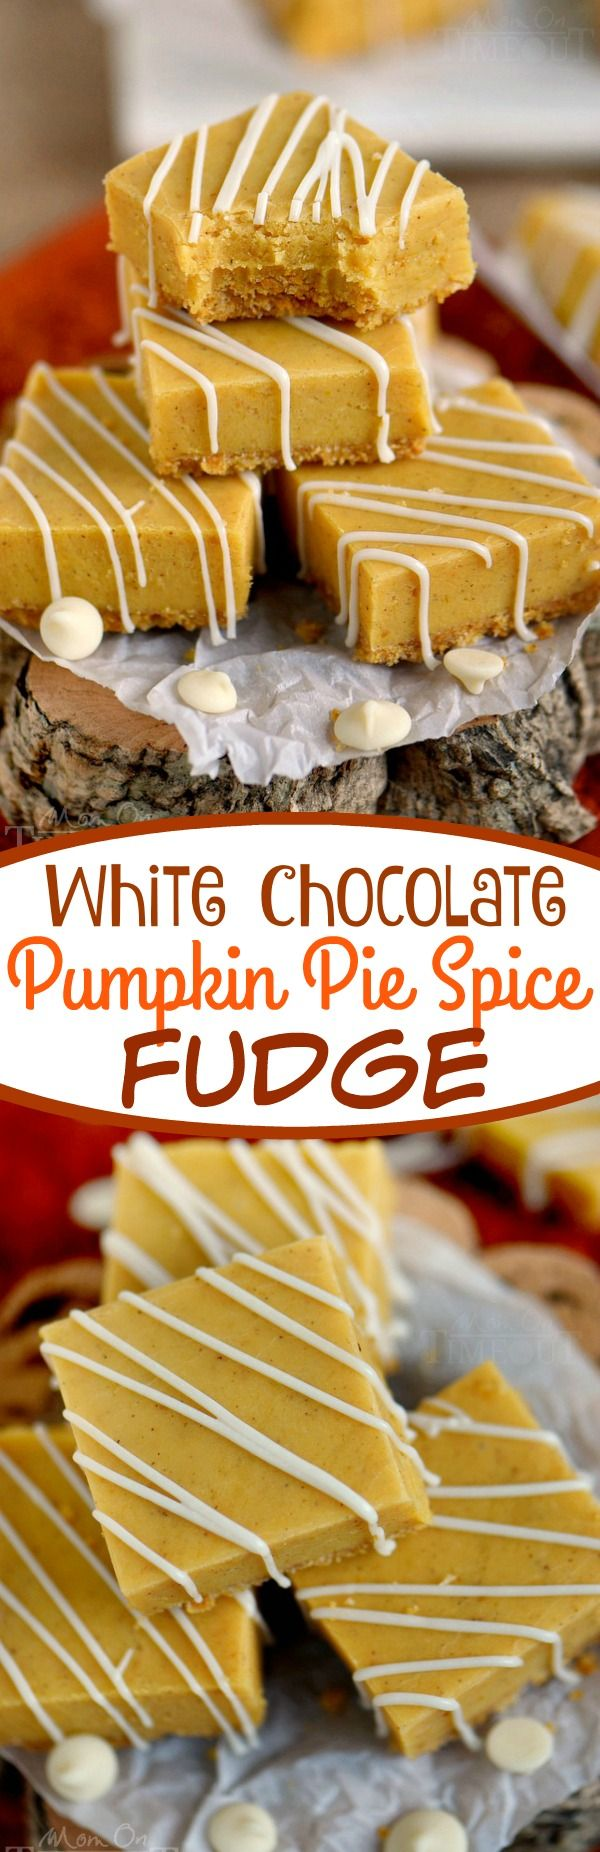 This delightful White Chocolate Pumpkin Pie Spice Fudge is made with real pumpkin, a graham cracker crust, and is topped with a white chocolate drizzle - perfection! Be sure to make a batch for friends and family this year! // Mom On Timeout